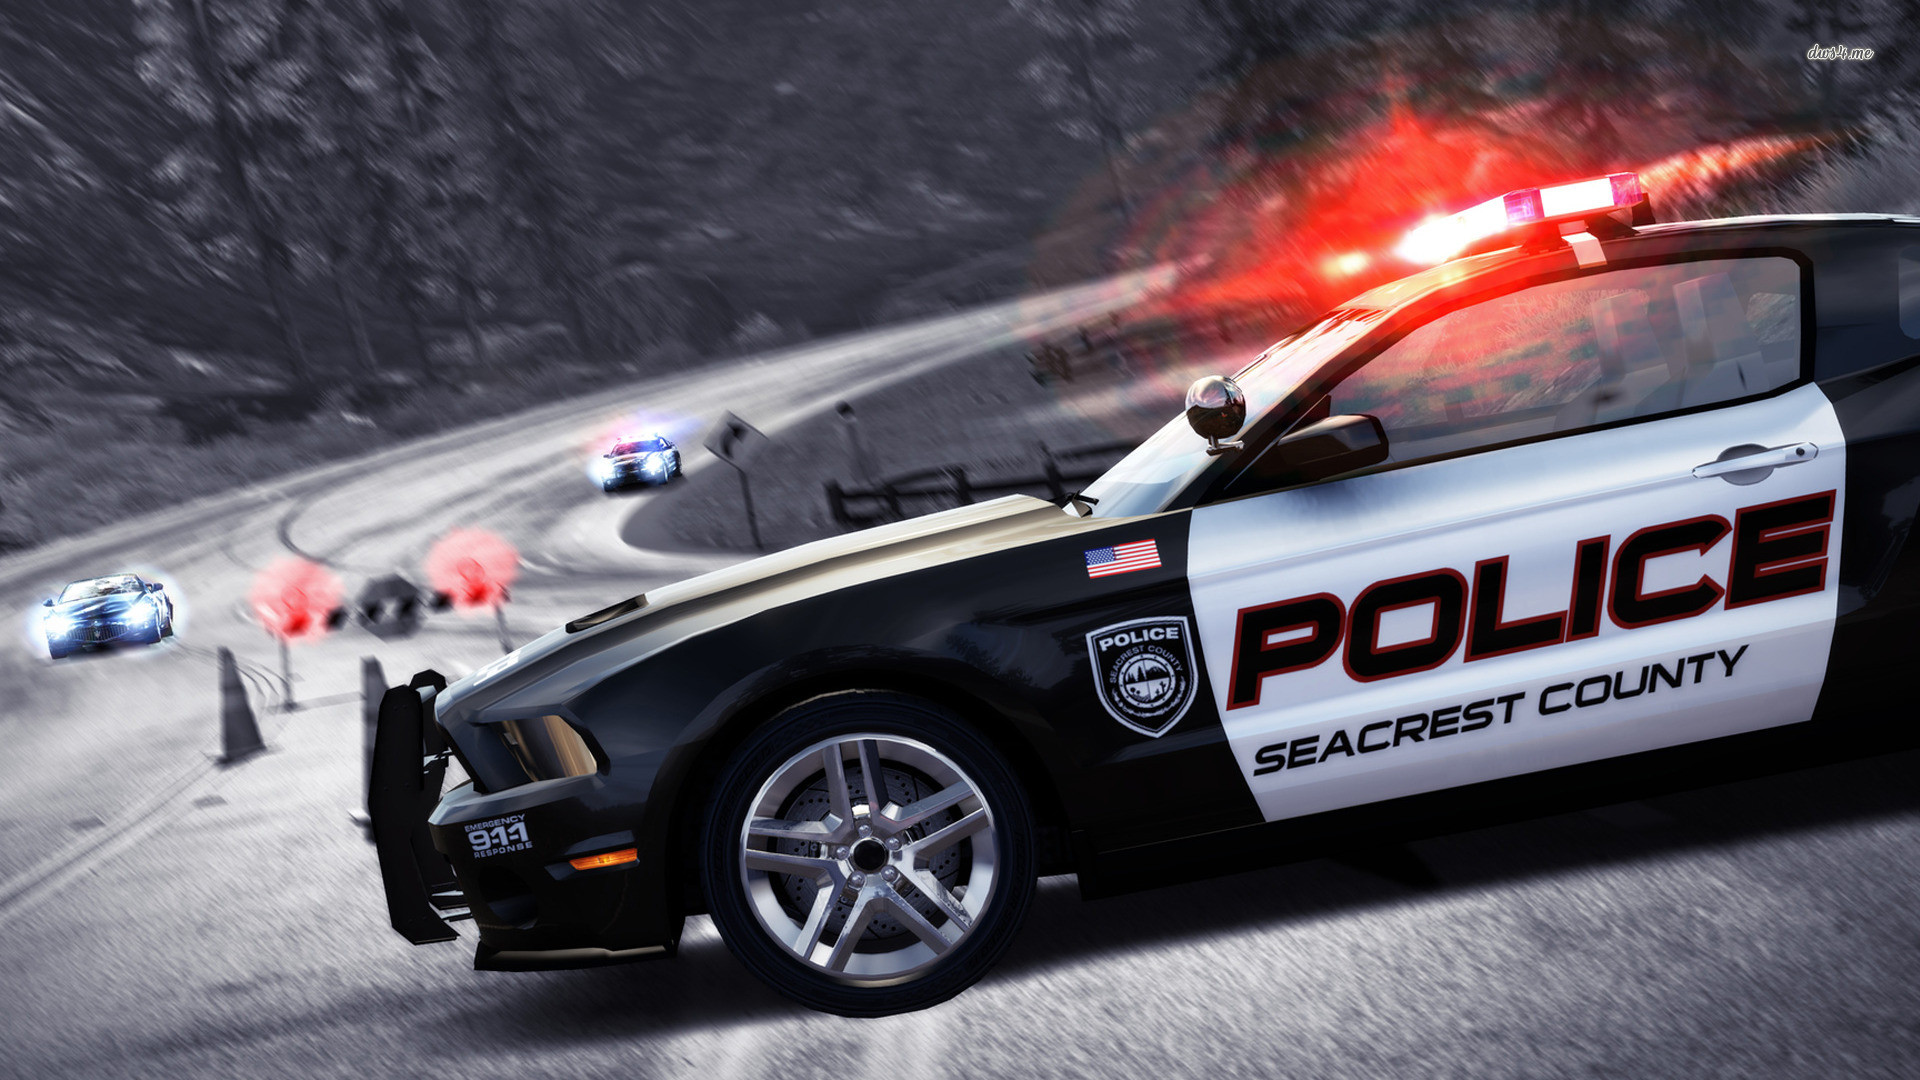 1920x1080 Police Car Wallpaper Free